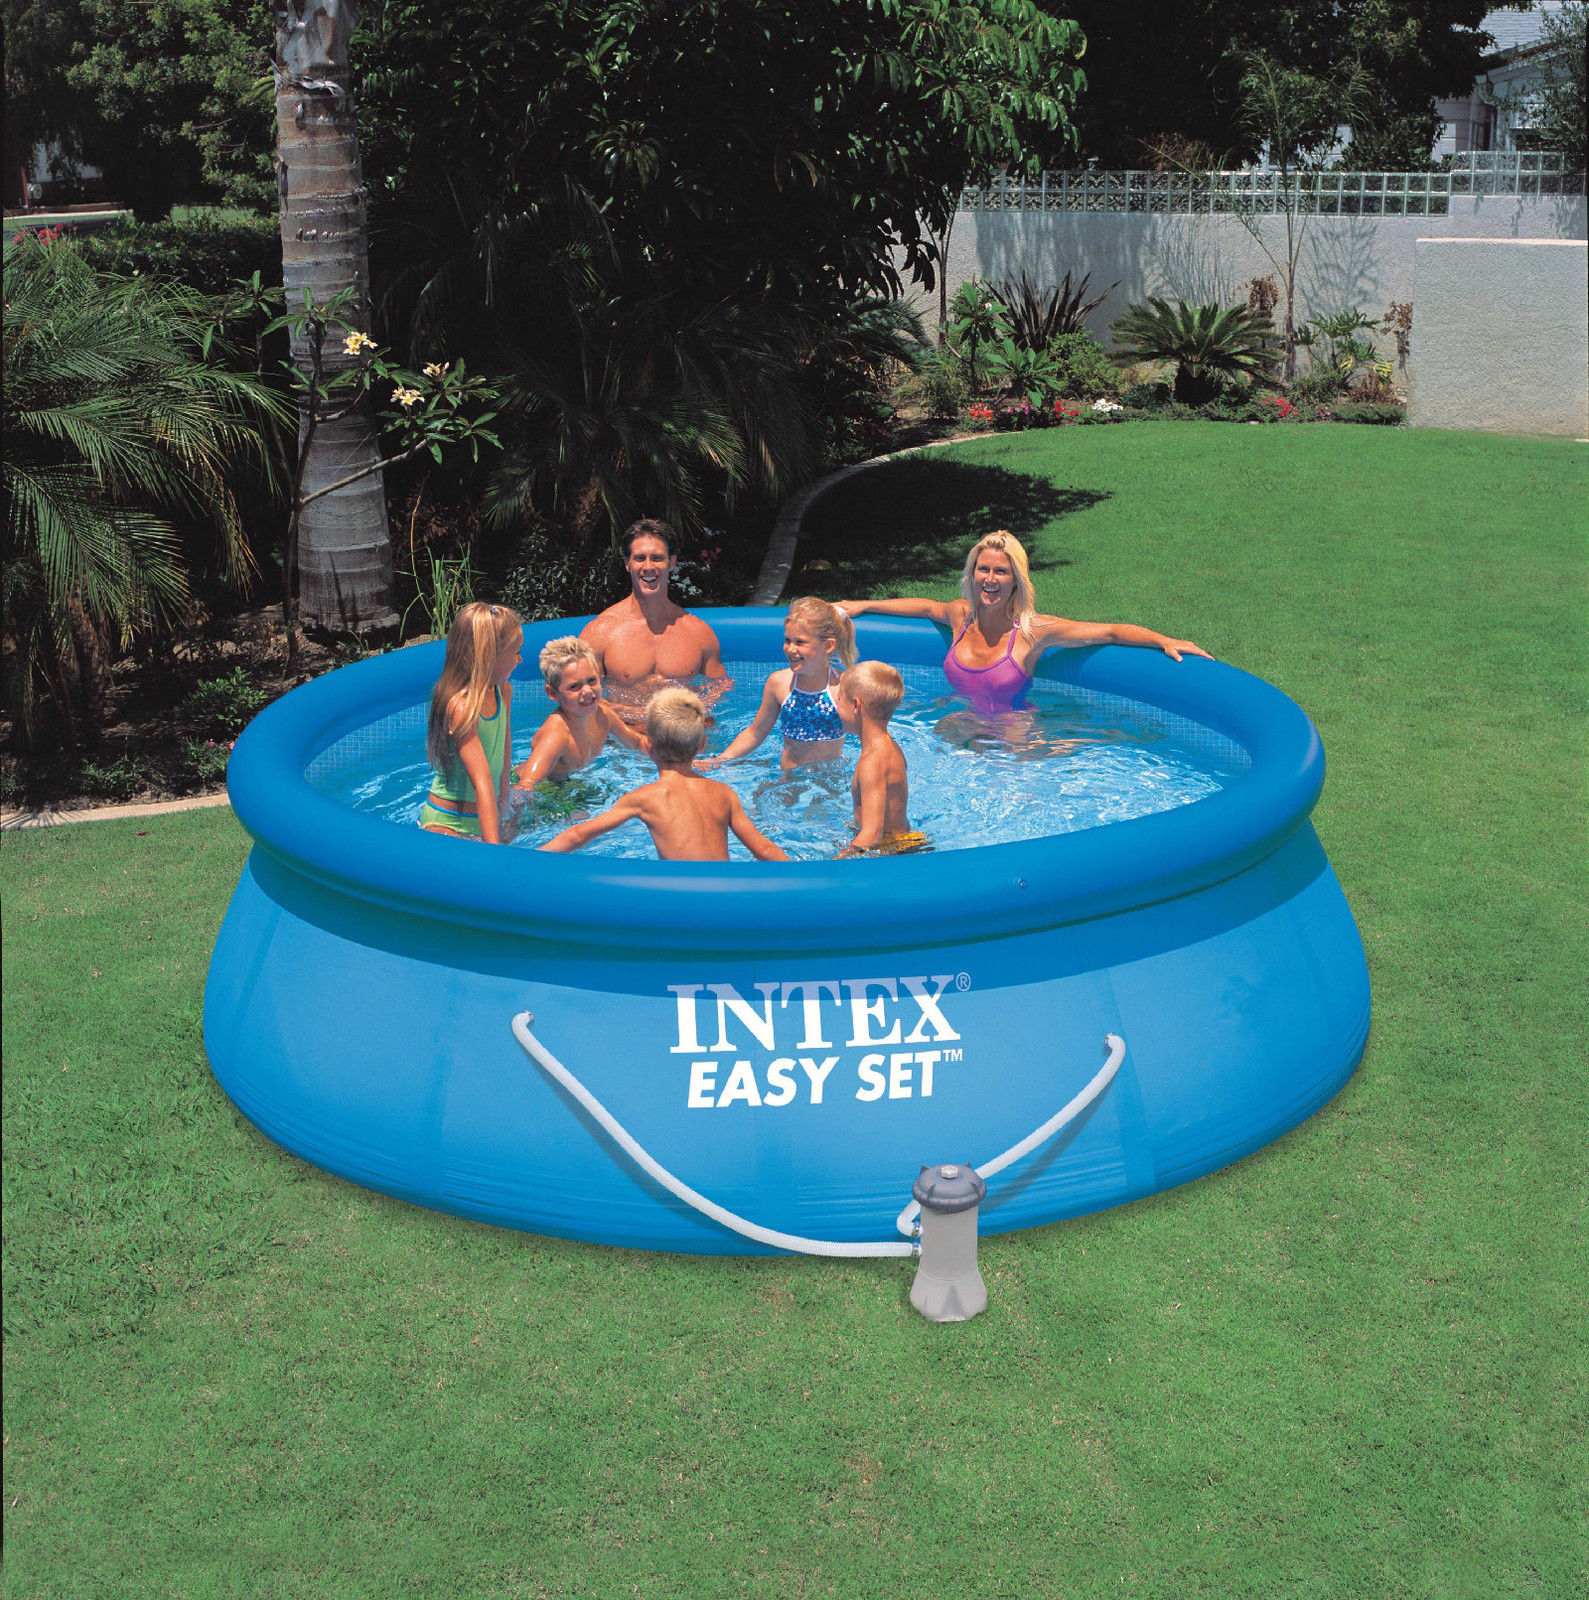 intex 13 x 33 easy set swimming pool with 530 gfci gph filter pump 28141eh - Intex Pools